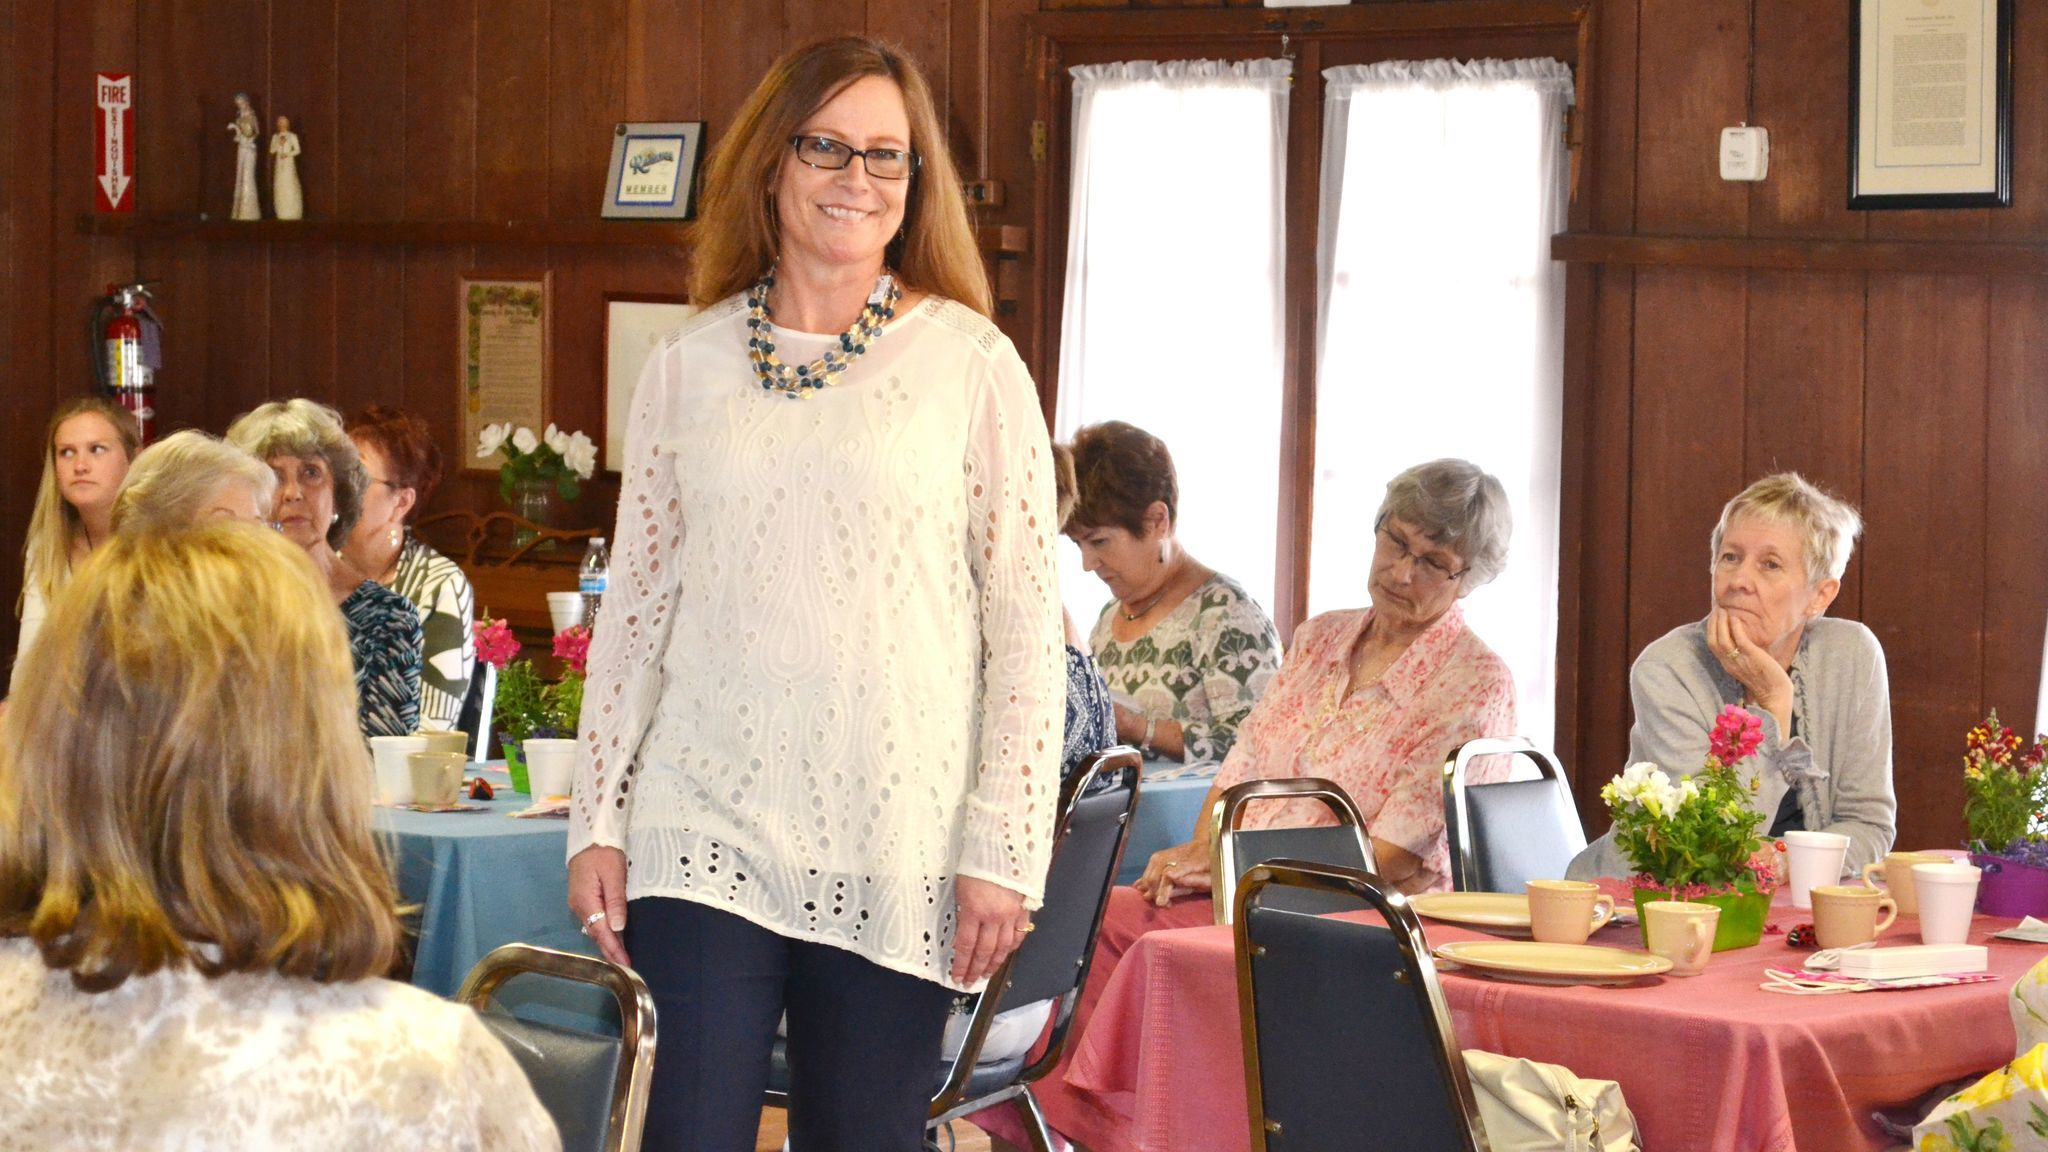 Sandra Ward models a lace top accented with a necklace of faux sea glass beads.